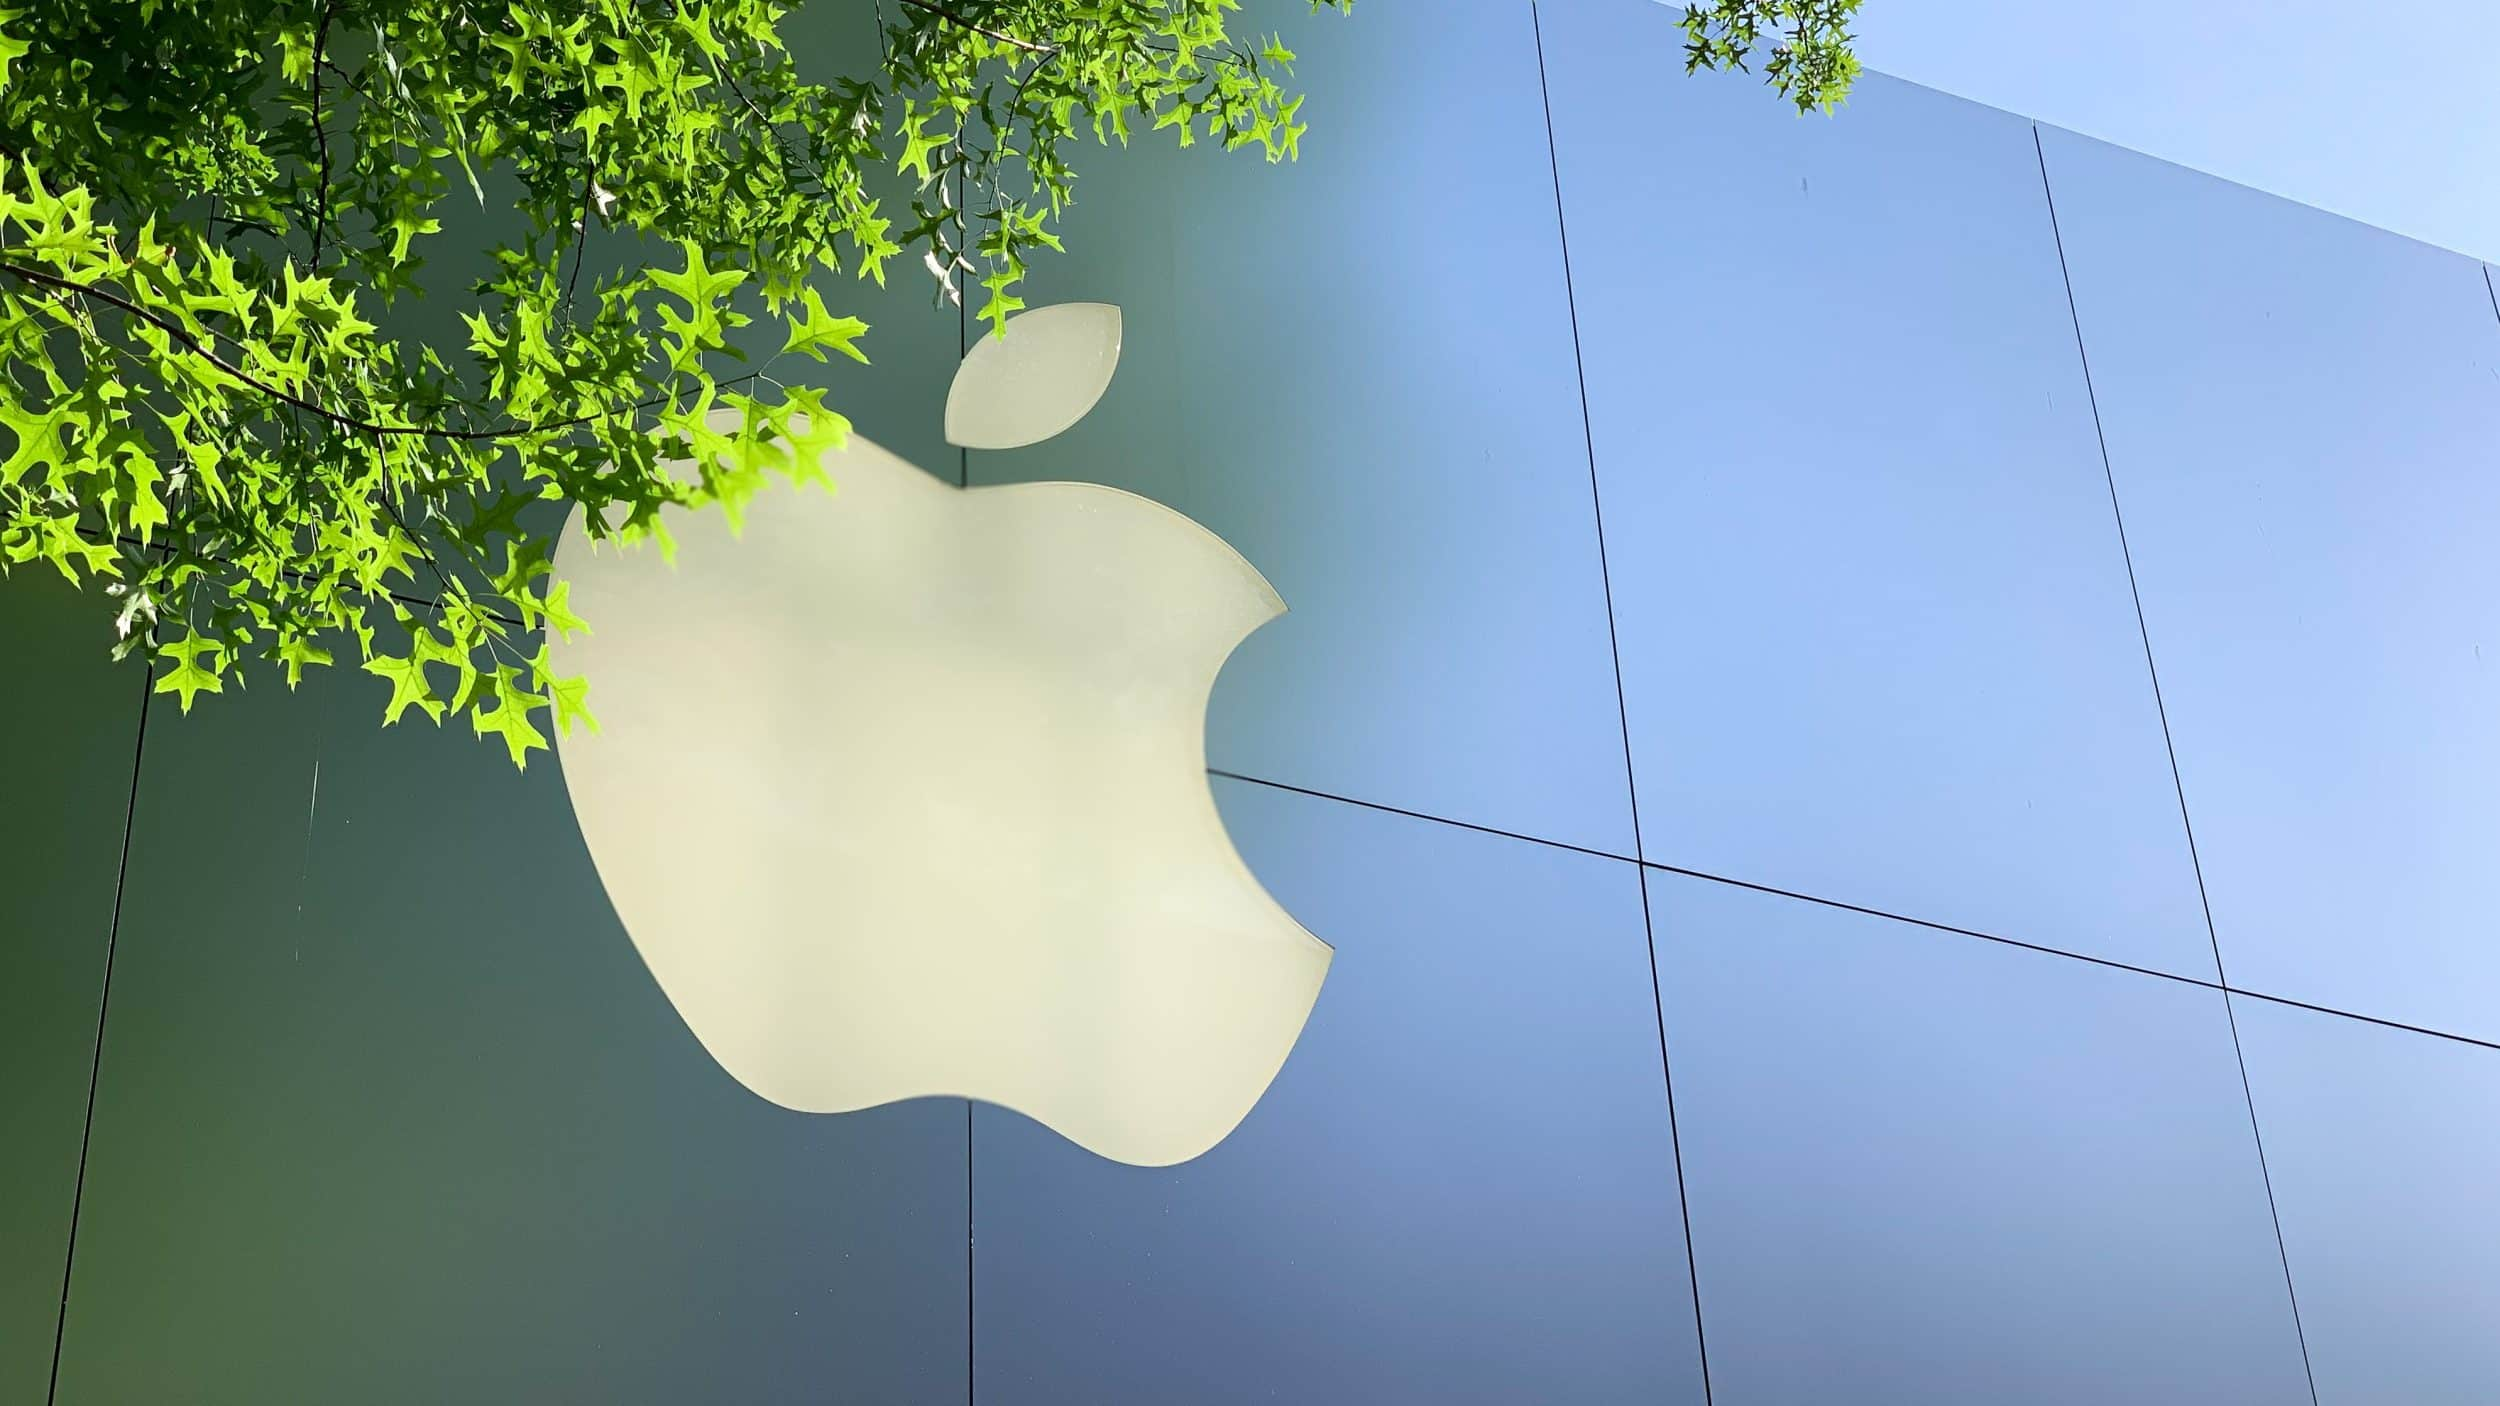 Apple plans to reopen retail stores next month